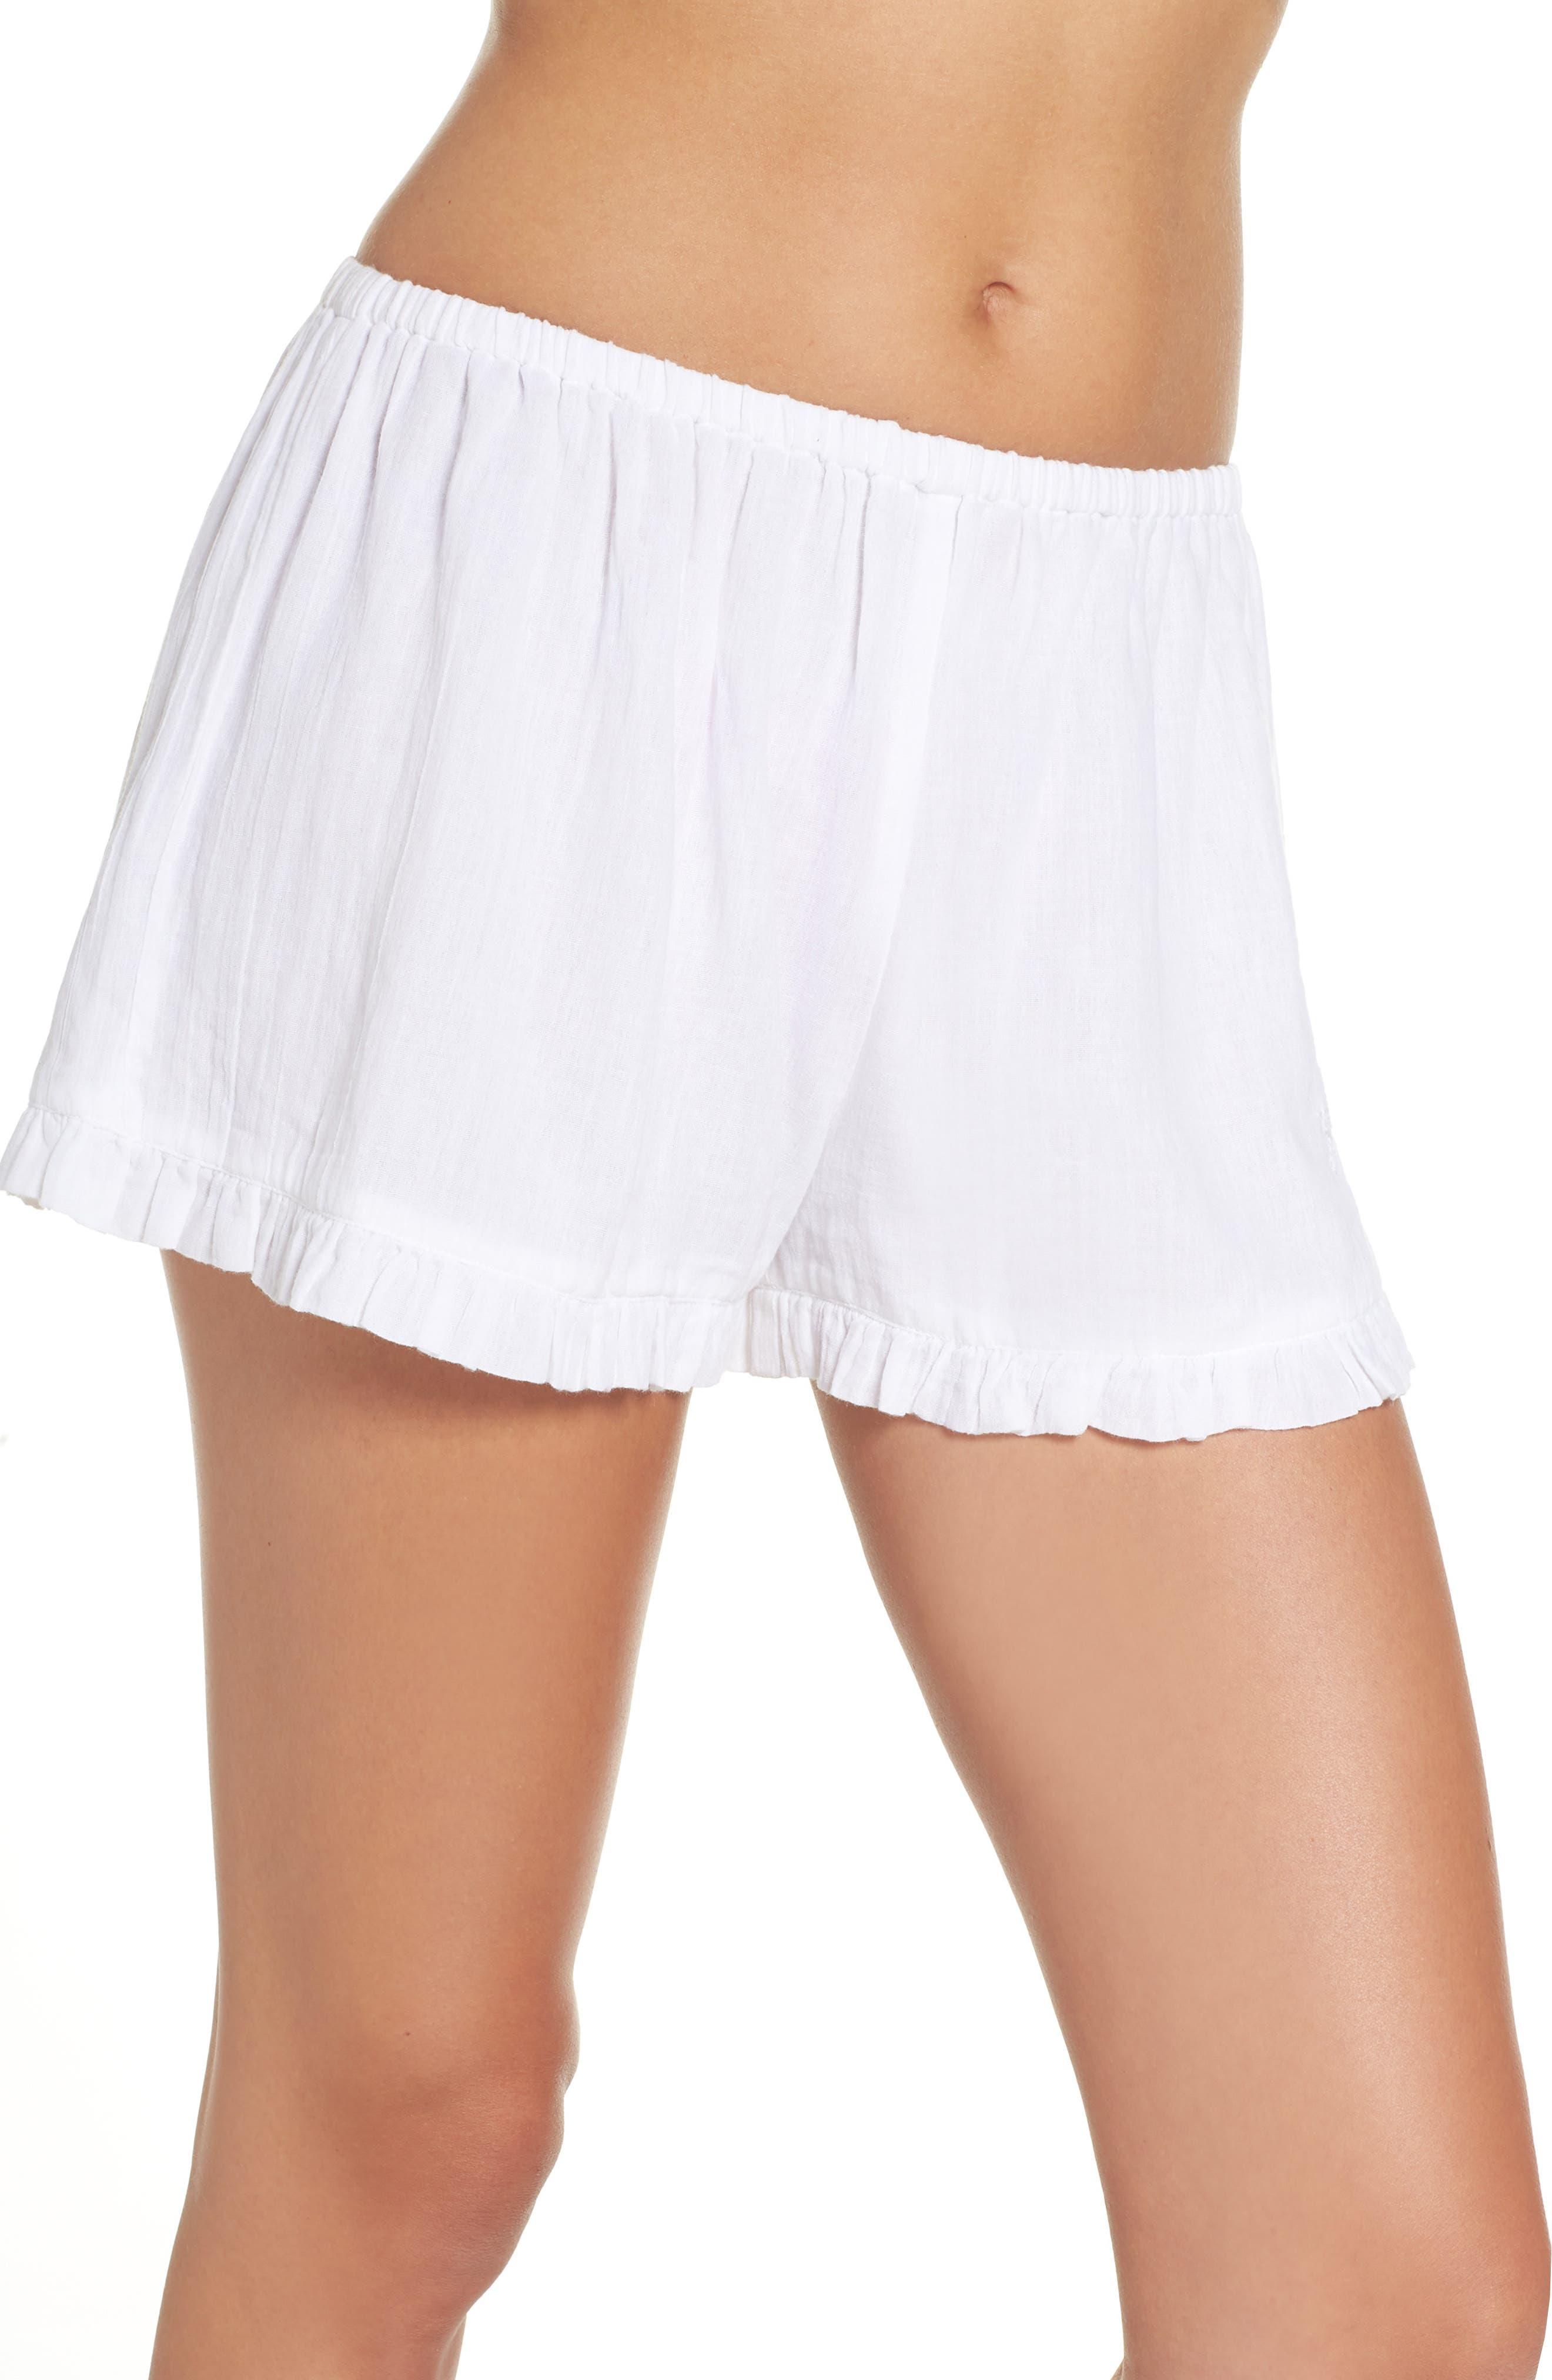 Cambria Ruffle Sleep Shorts,                             Main thumbnail 1, color,                             White